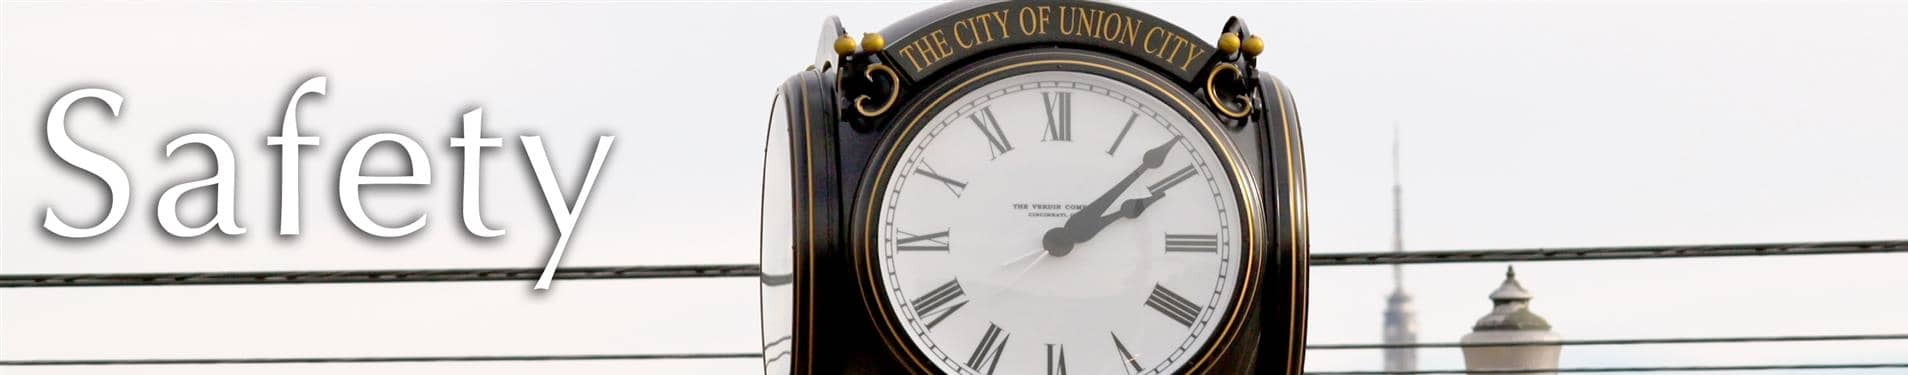 Safety Tips – Union City Police Department